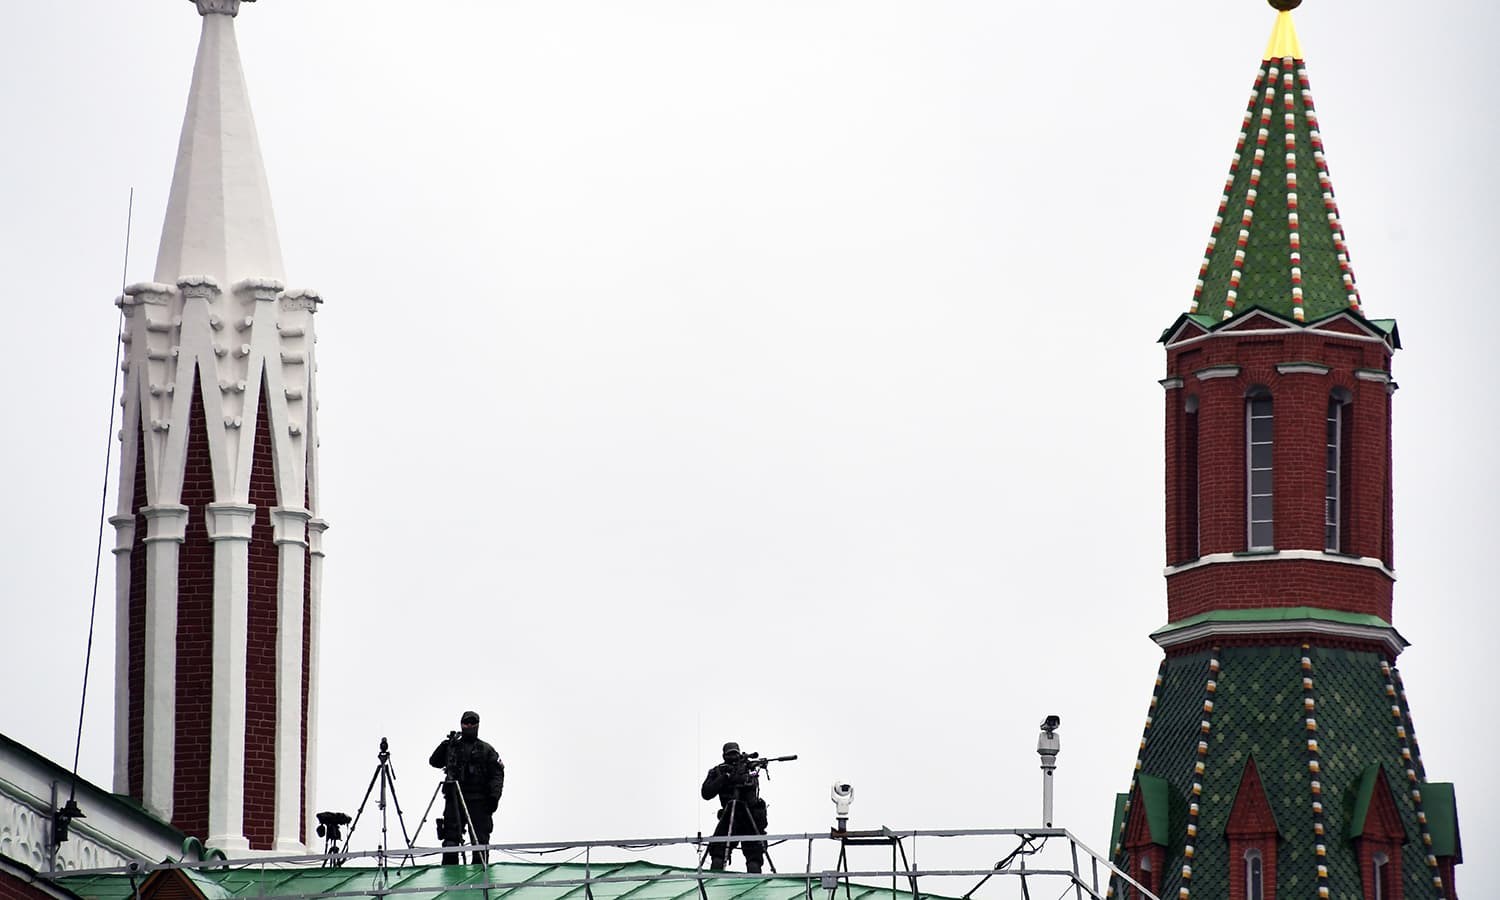 Snipers secure the area during the Victory Day military parade at Red Square in Moscow. -AFP